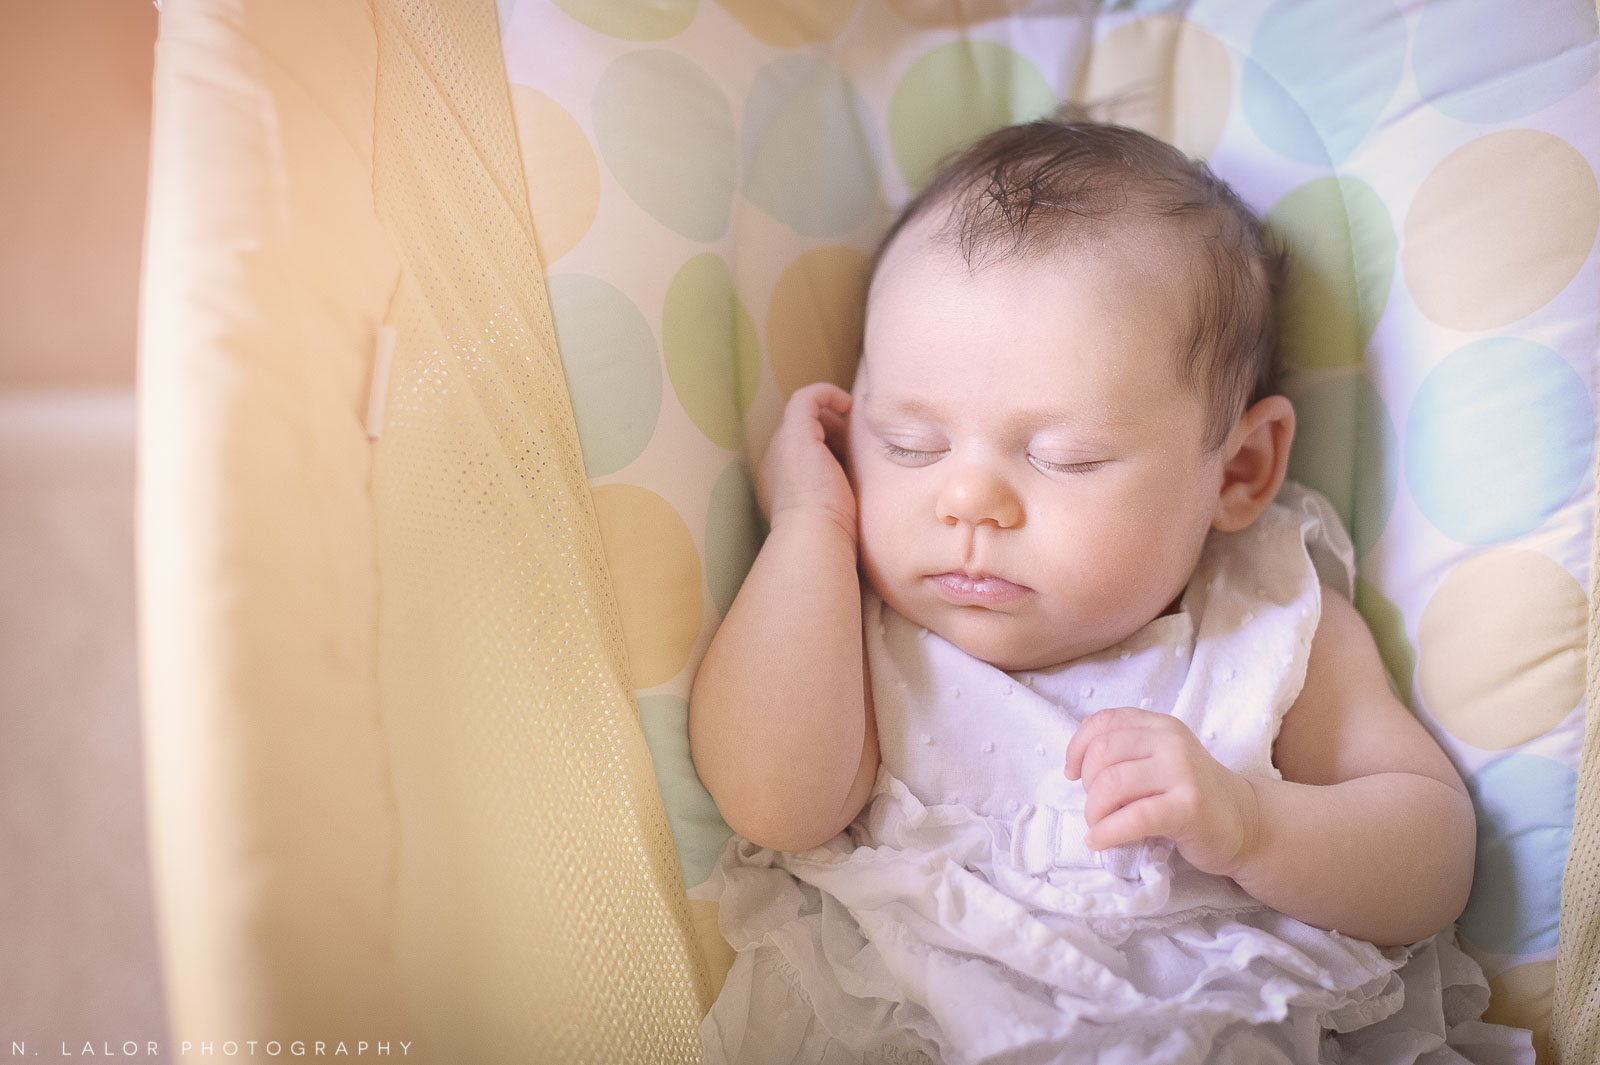 nlalor-photography-2-month-old-baby-family-session-connecticut-13.jpg